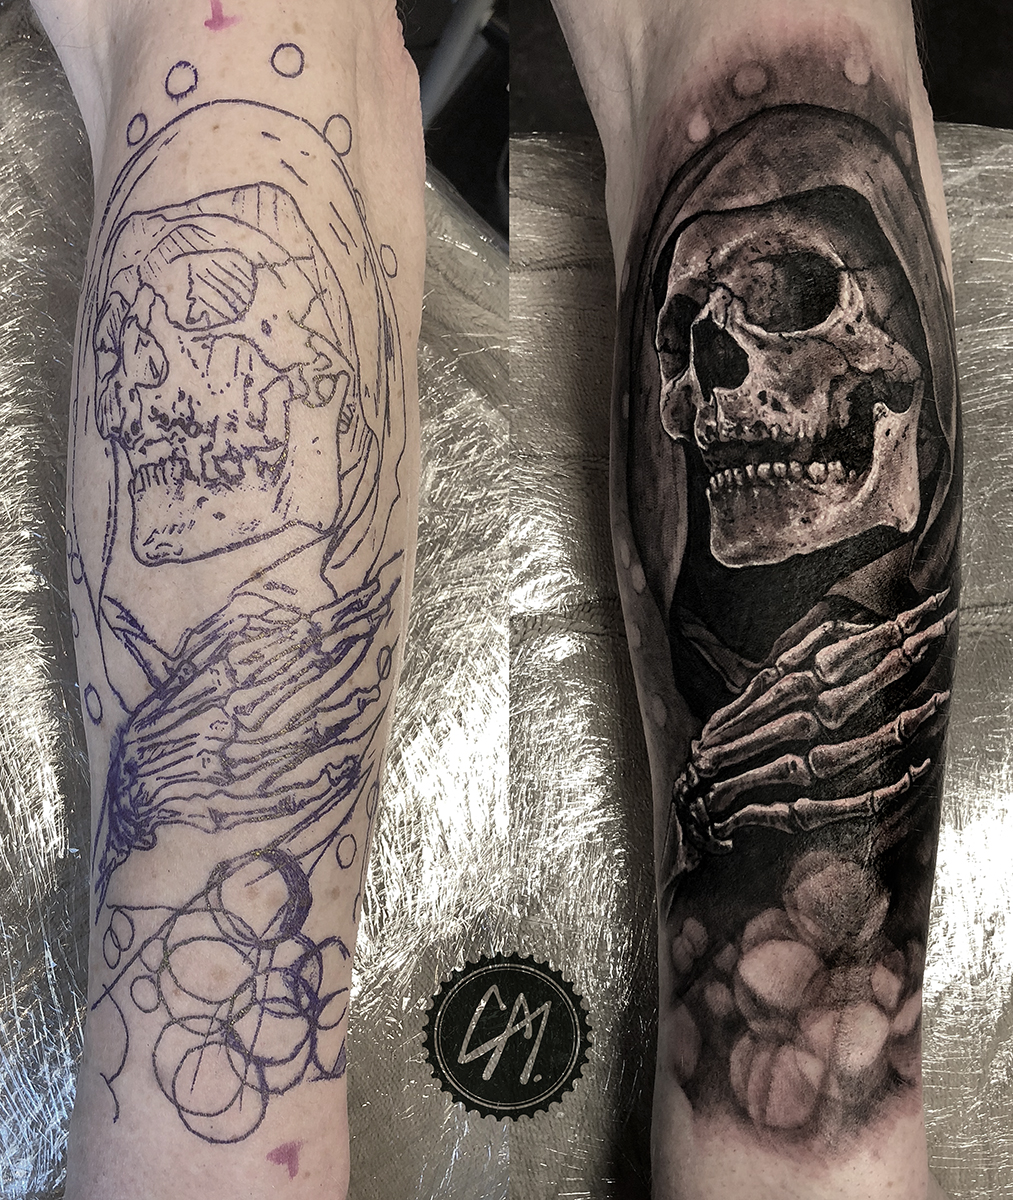 Tattoos by Craig Mackay.